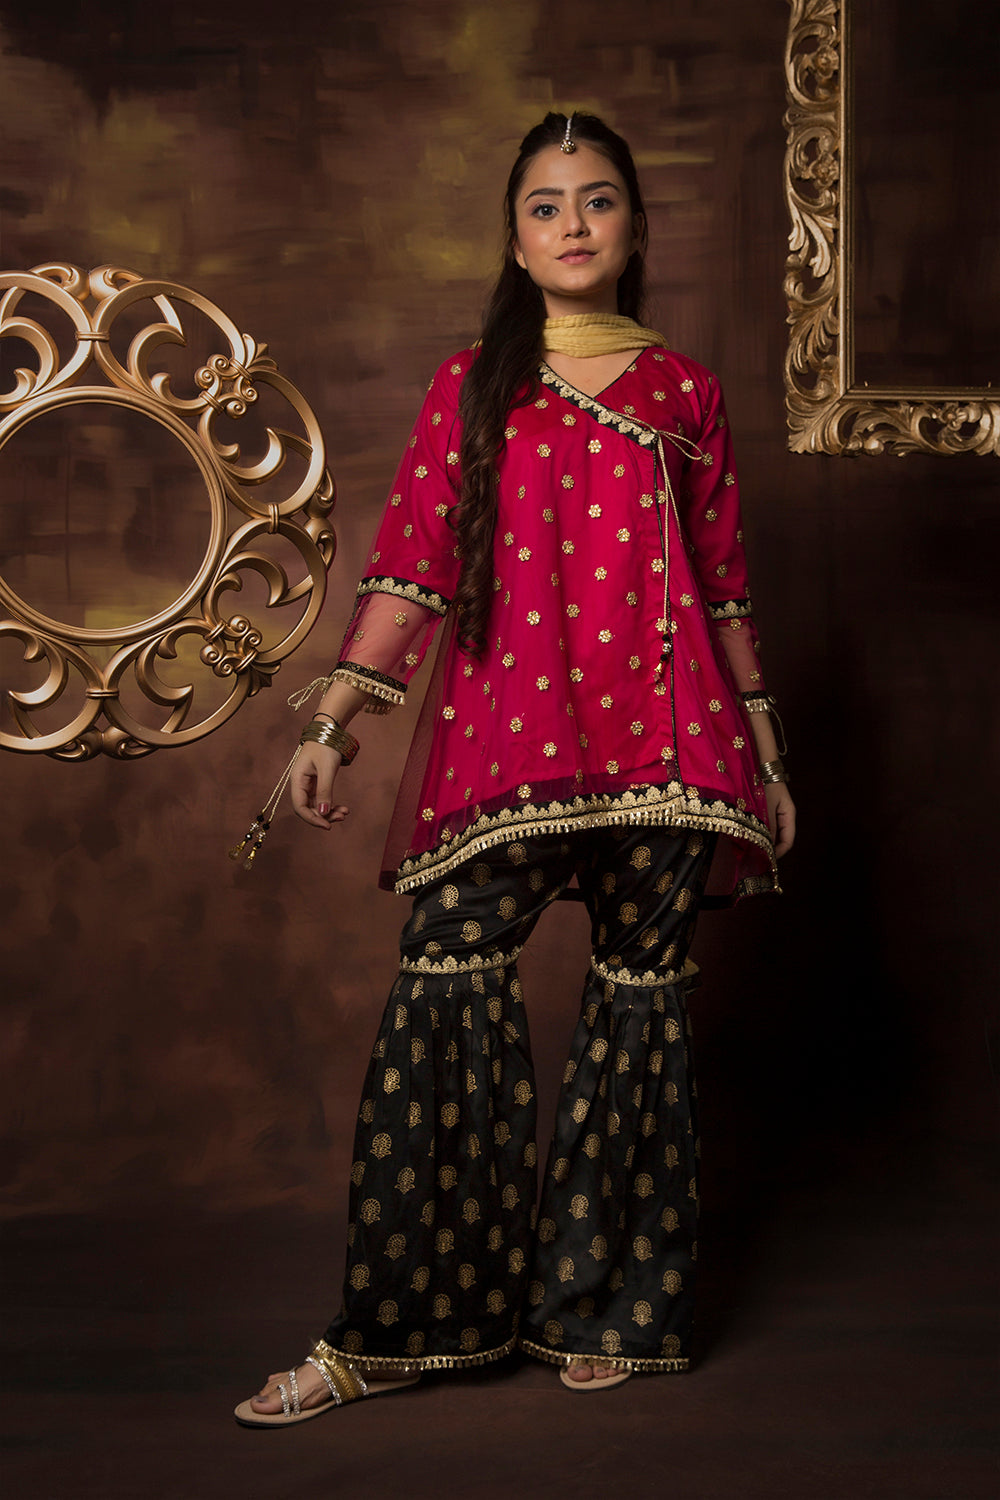 GDD-01412 | Shocking Pink & Black | Formal 3 Piece Suit  | Polyester Net Cationic